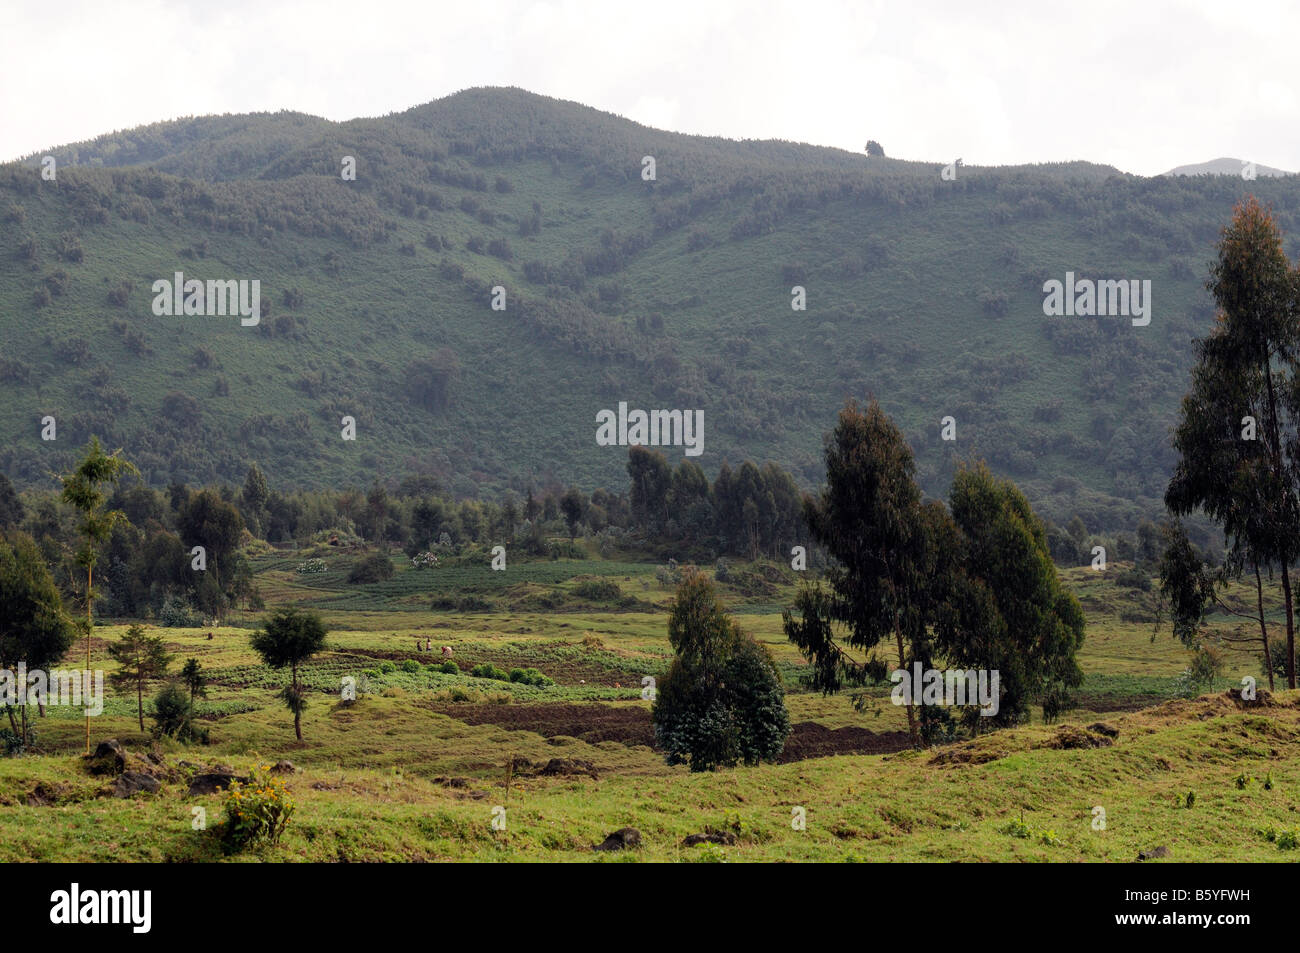 typical rural countryside farm land beside the volcanoes national park in rwanda - Stock Image